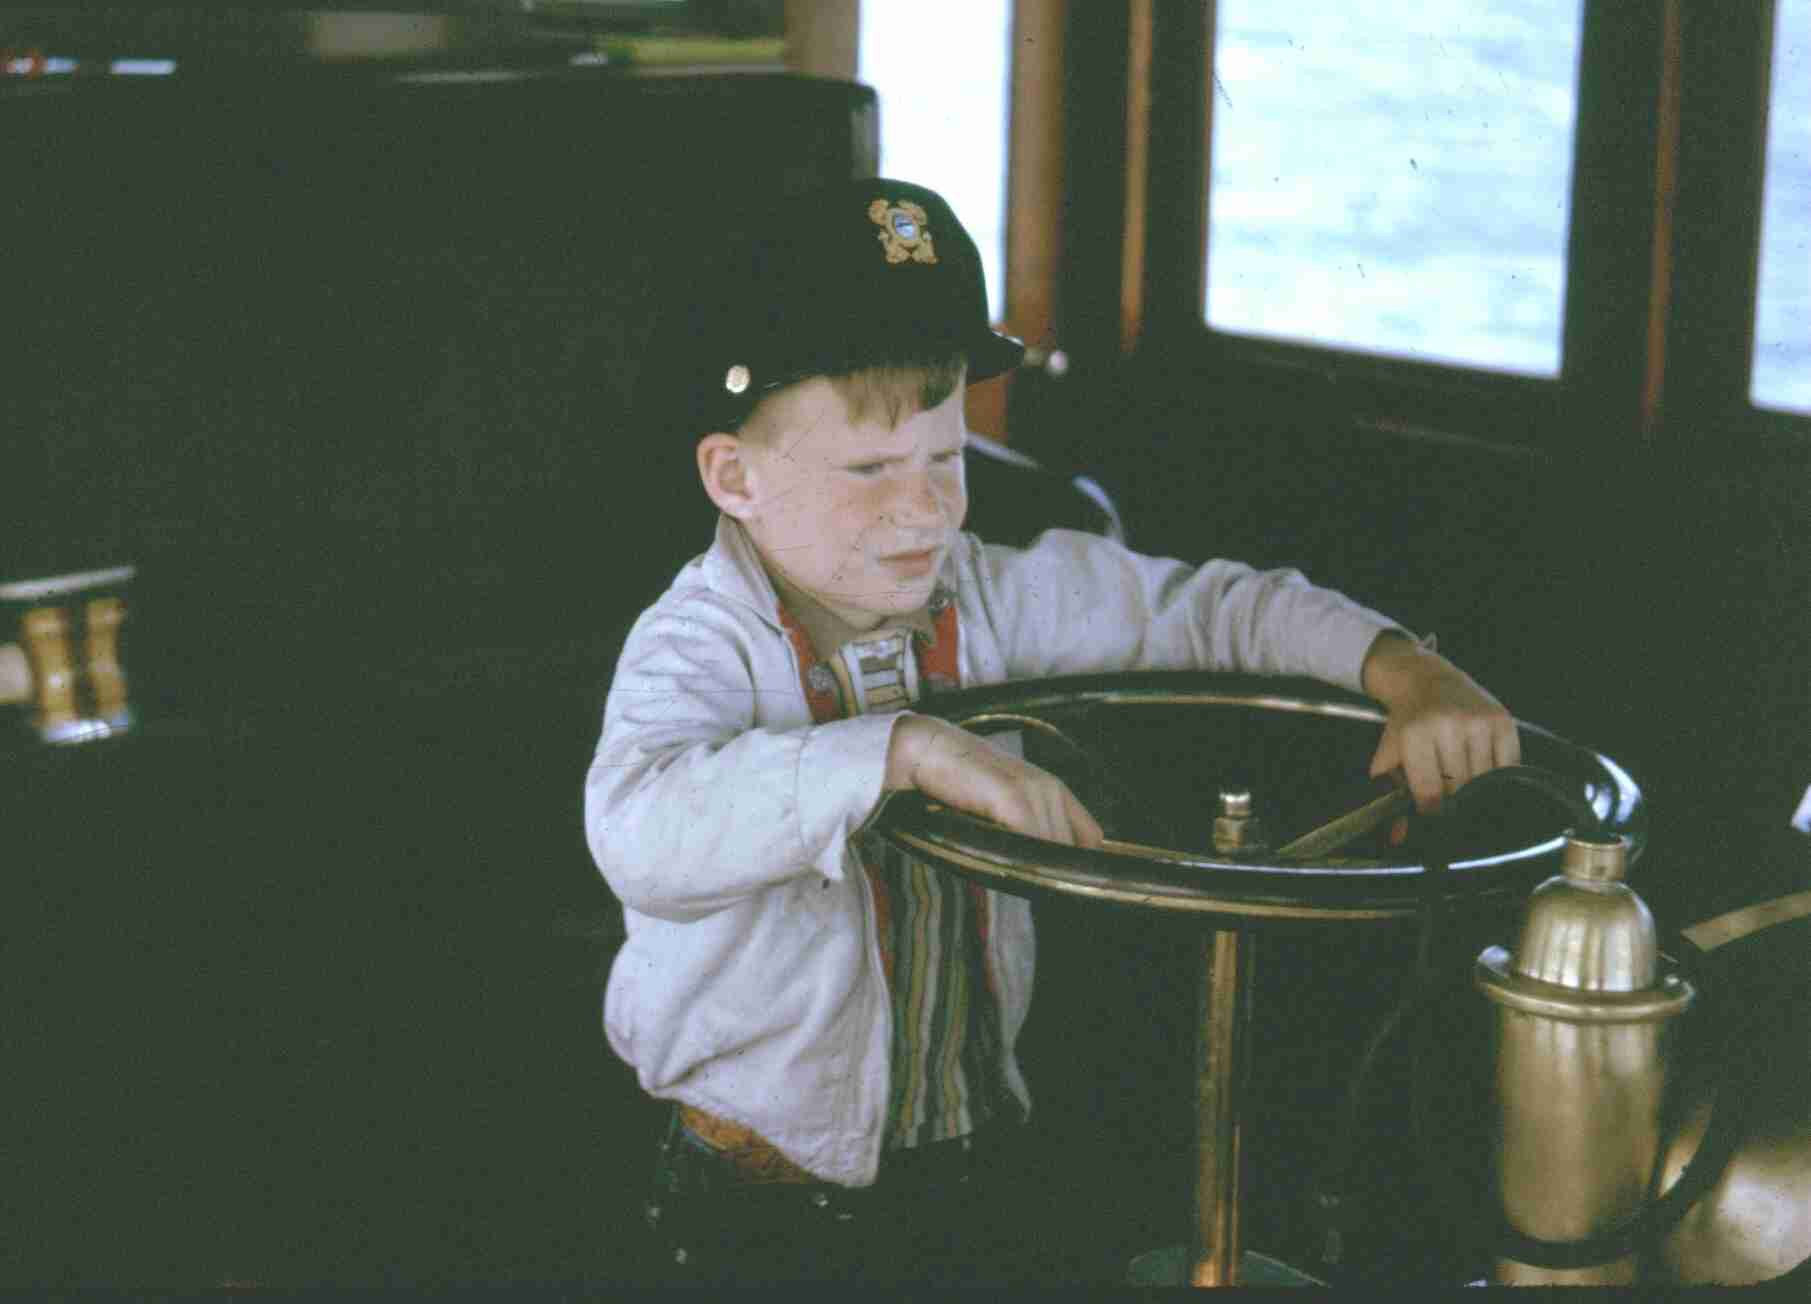 Otto as a child, ready at the helm